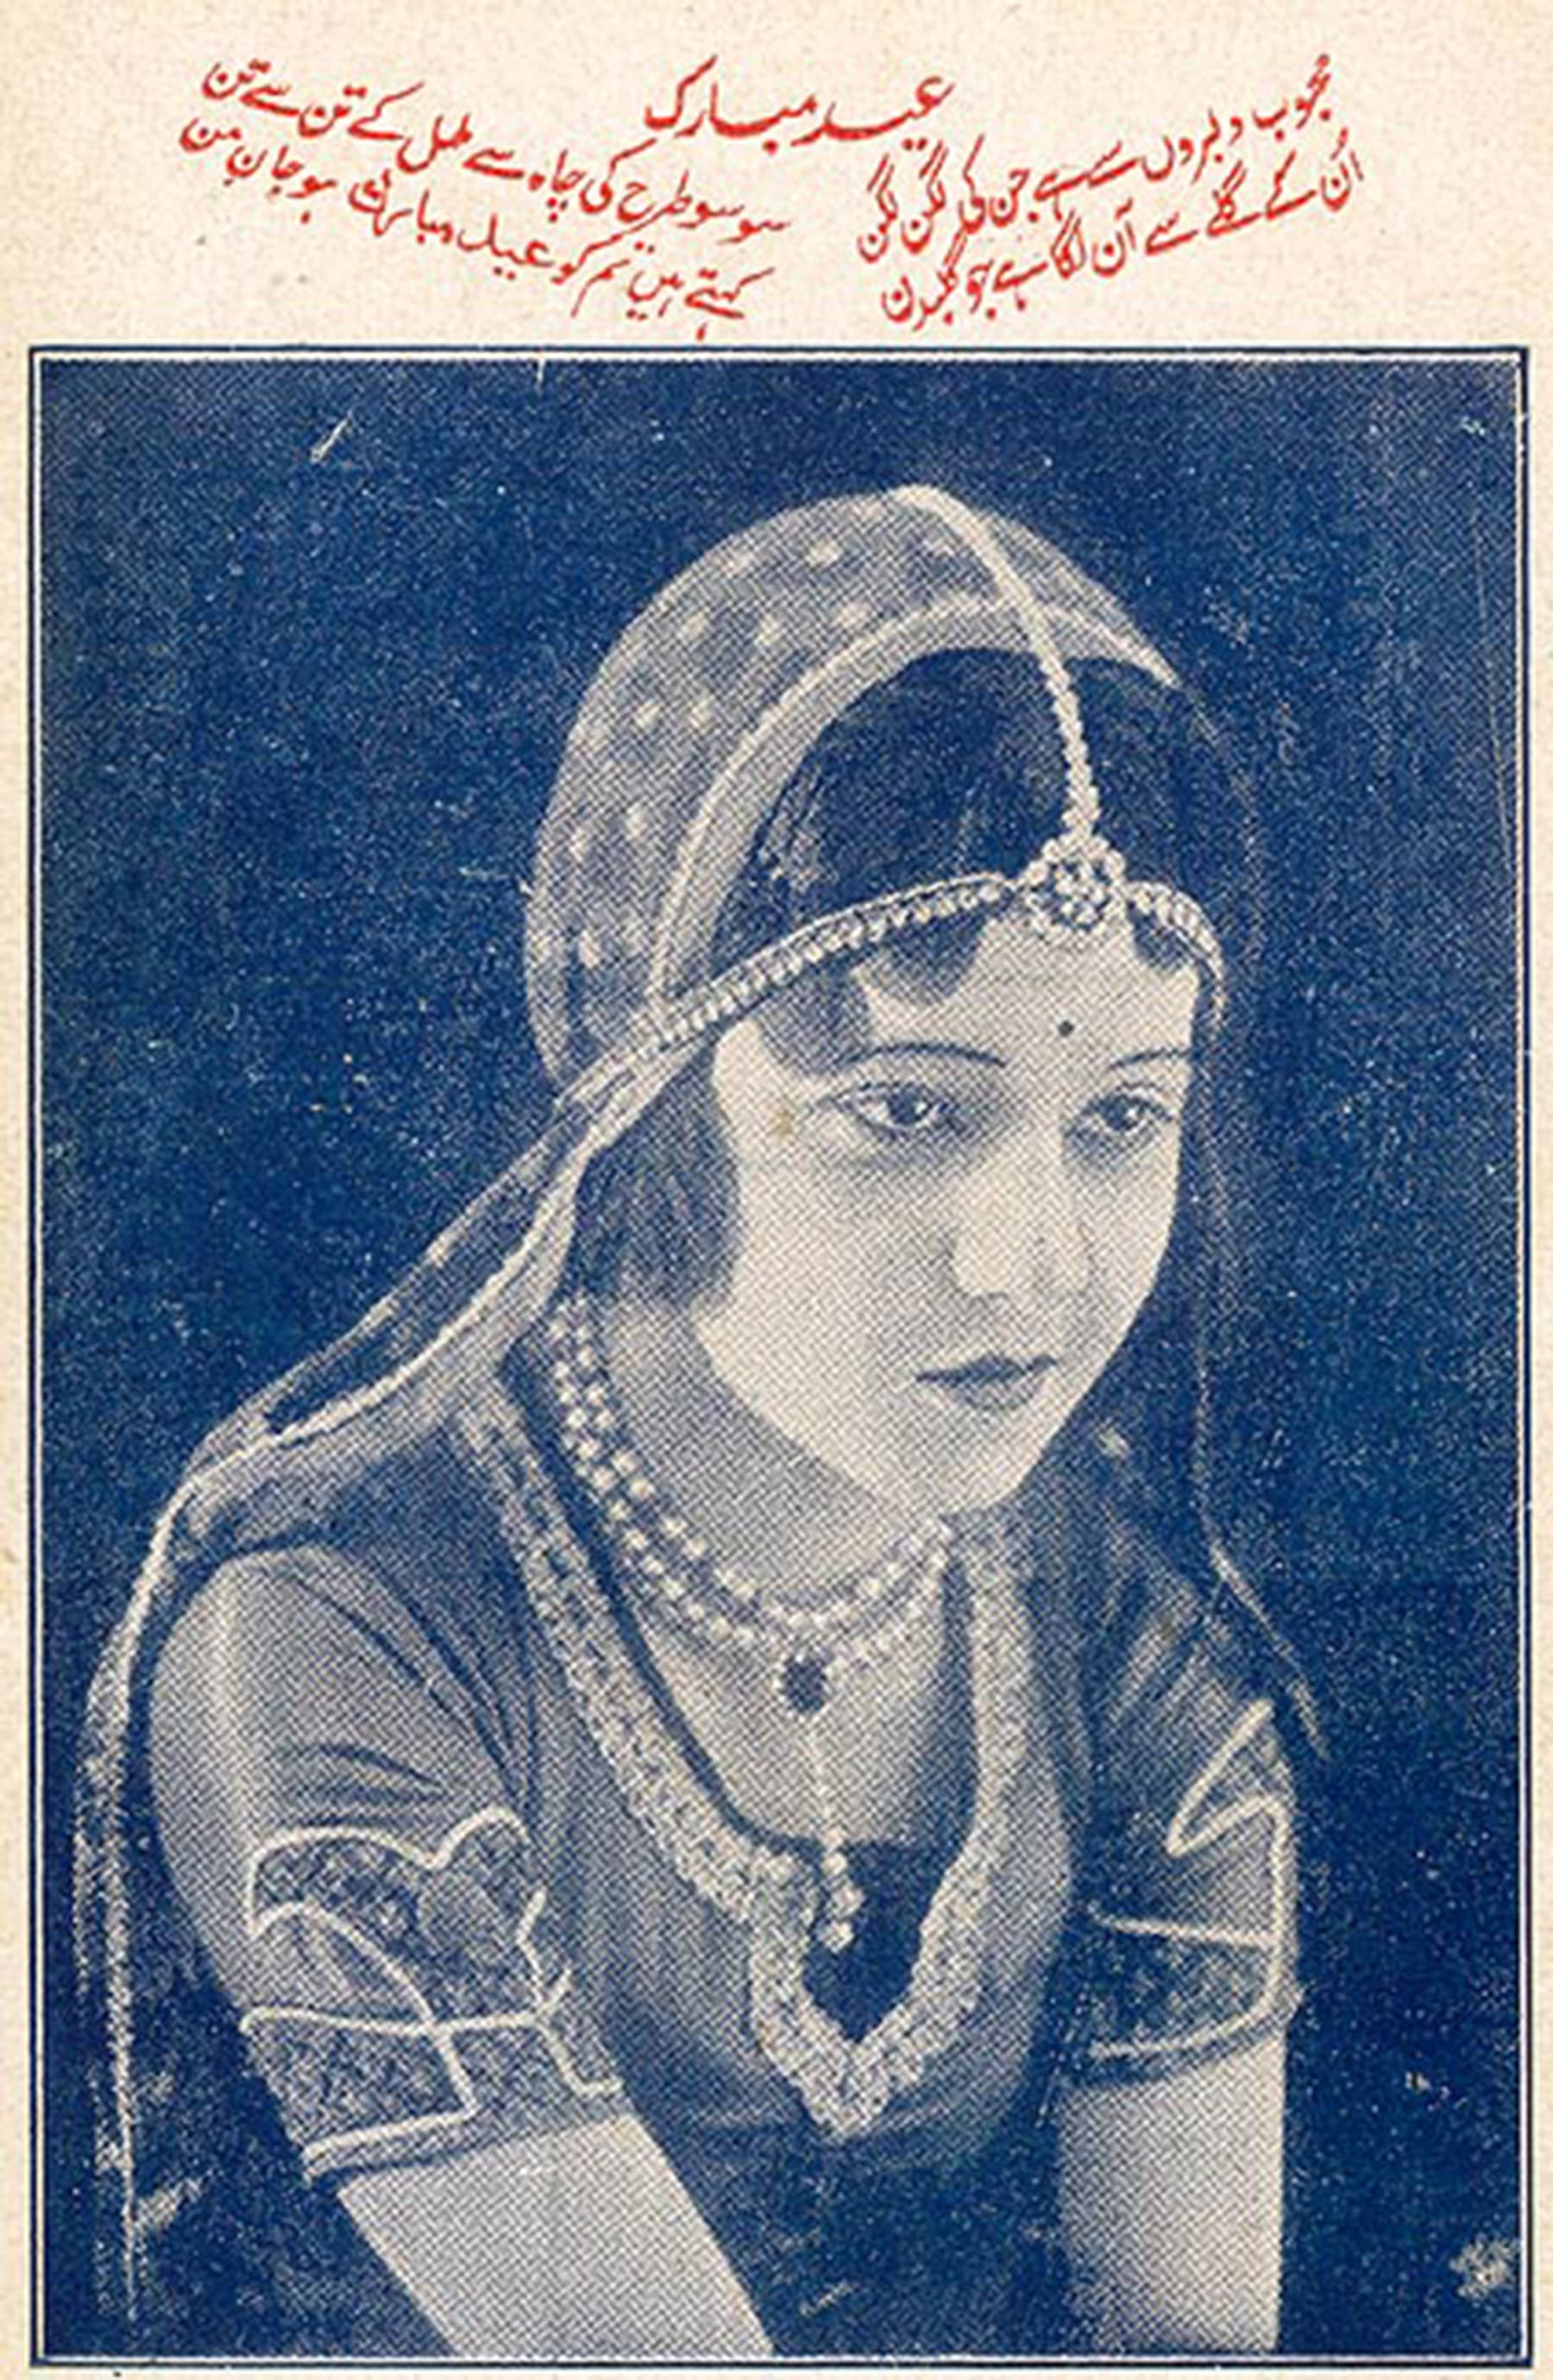 Eid Mubarak card distributed by Sultan Husen Bookseller, Bombay, featuring an unidentified Indian actress. From the collection of Reena Mohan.